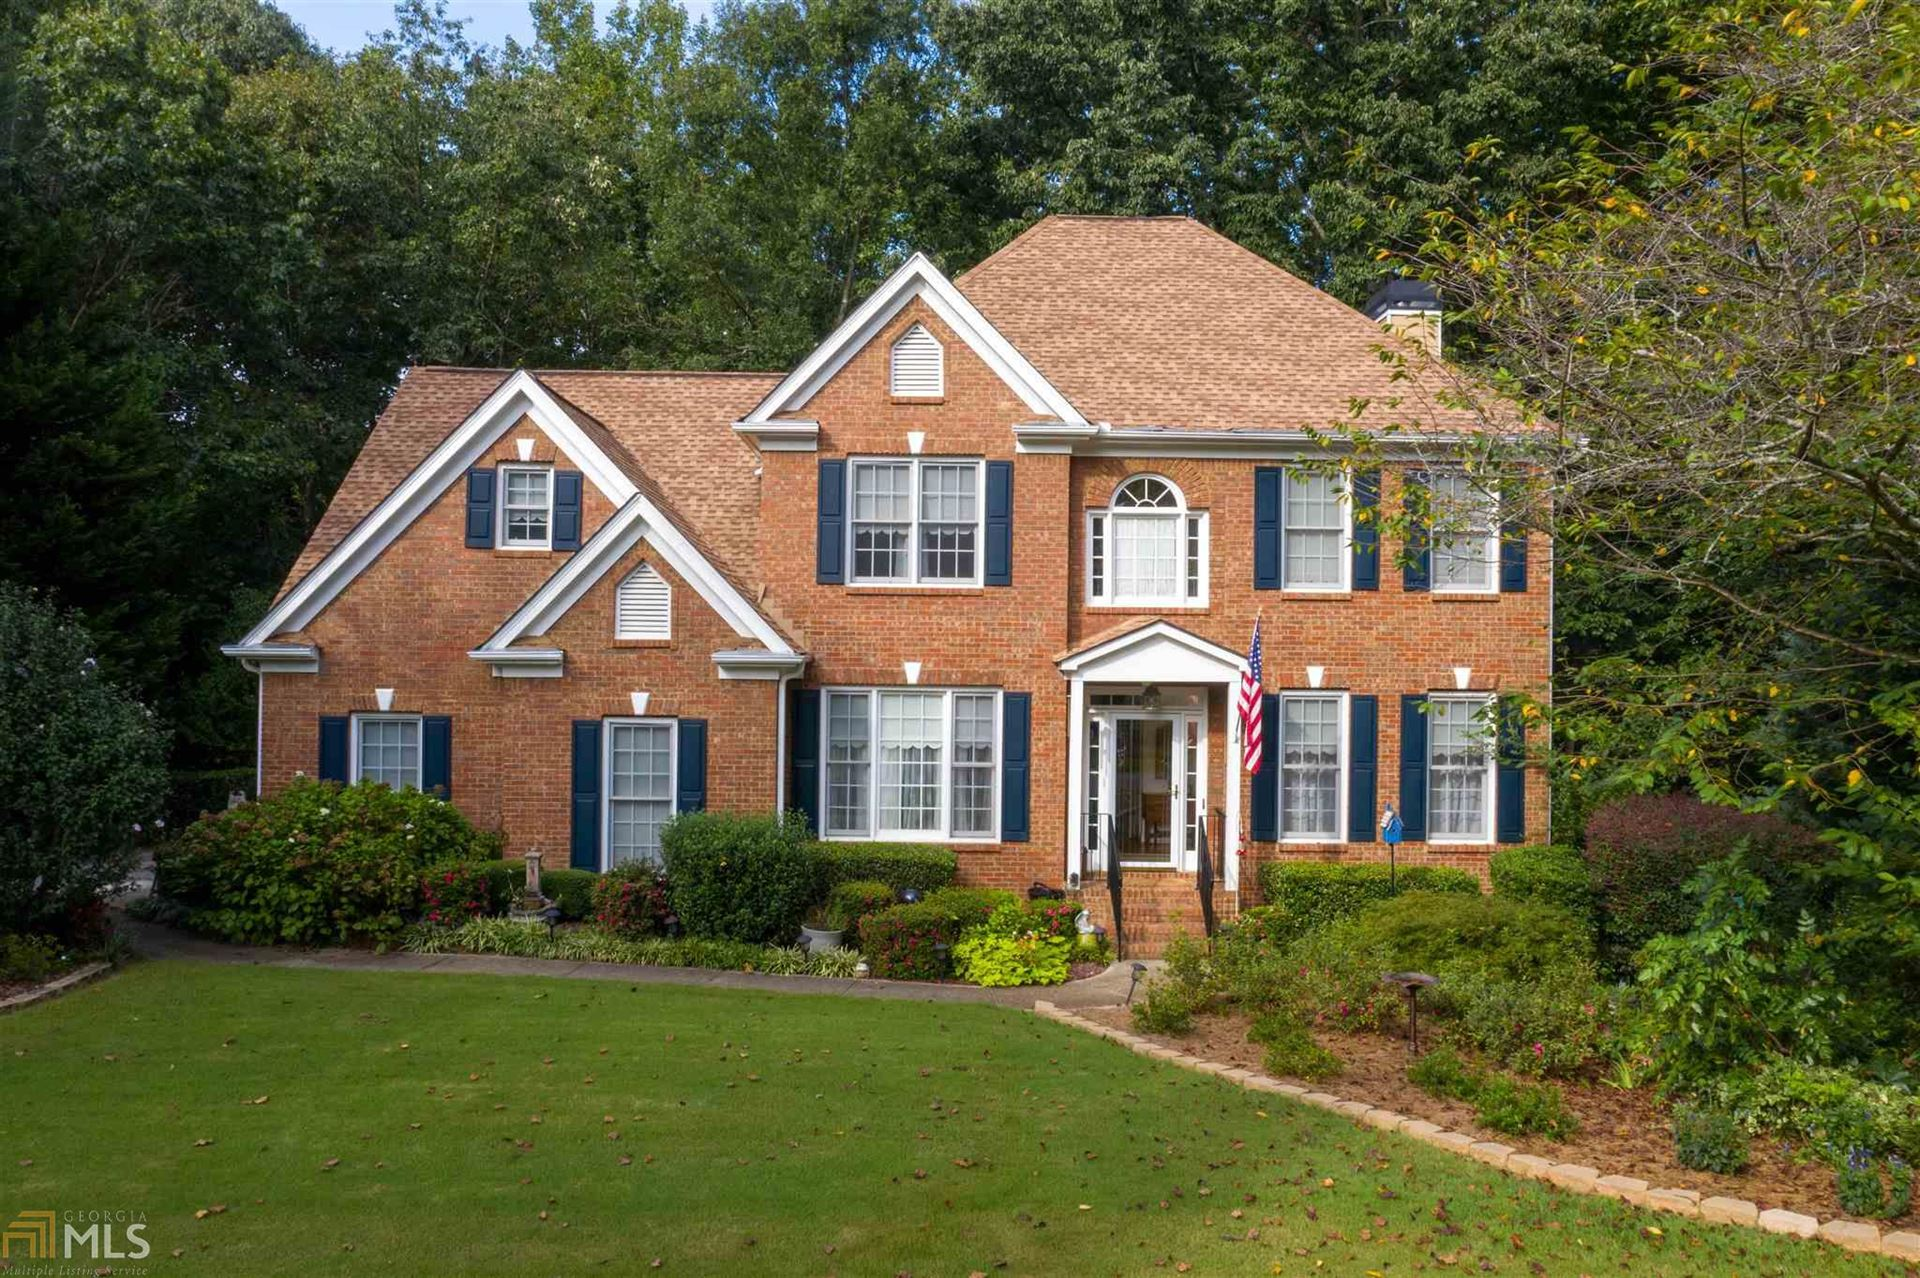 6386 Chestnut Pkwy, Flowery Branch, GA 30542 - MLS#: 8858567